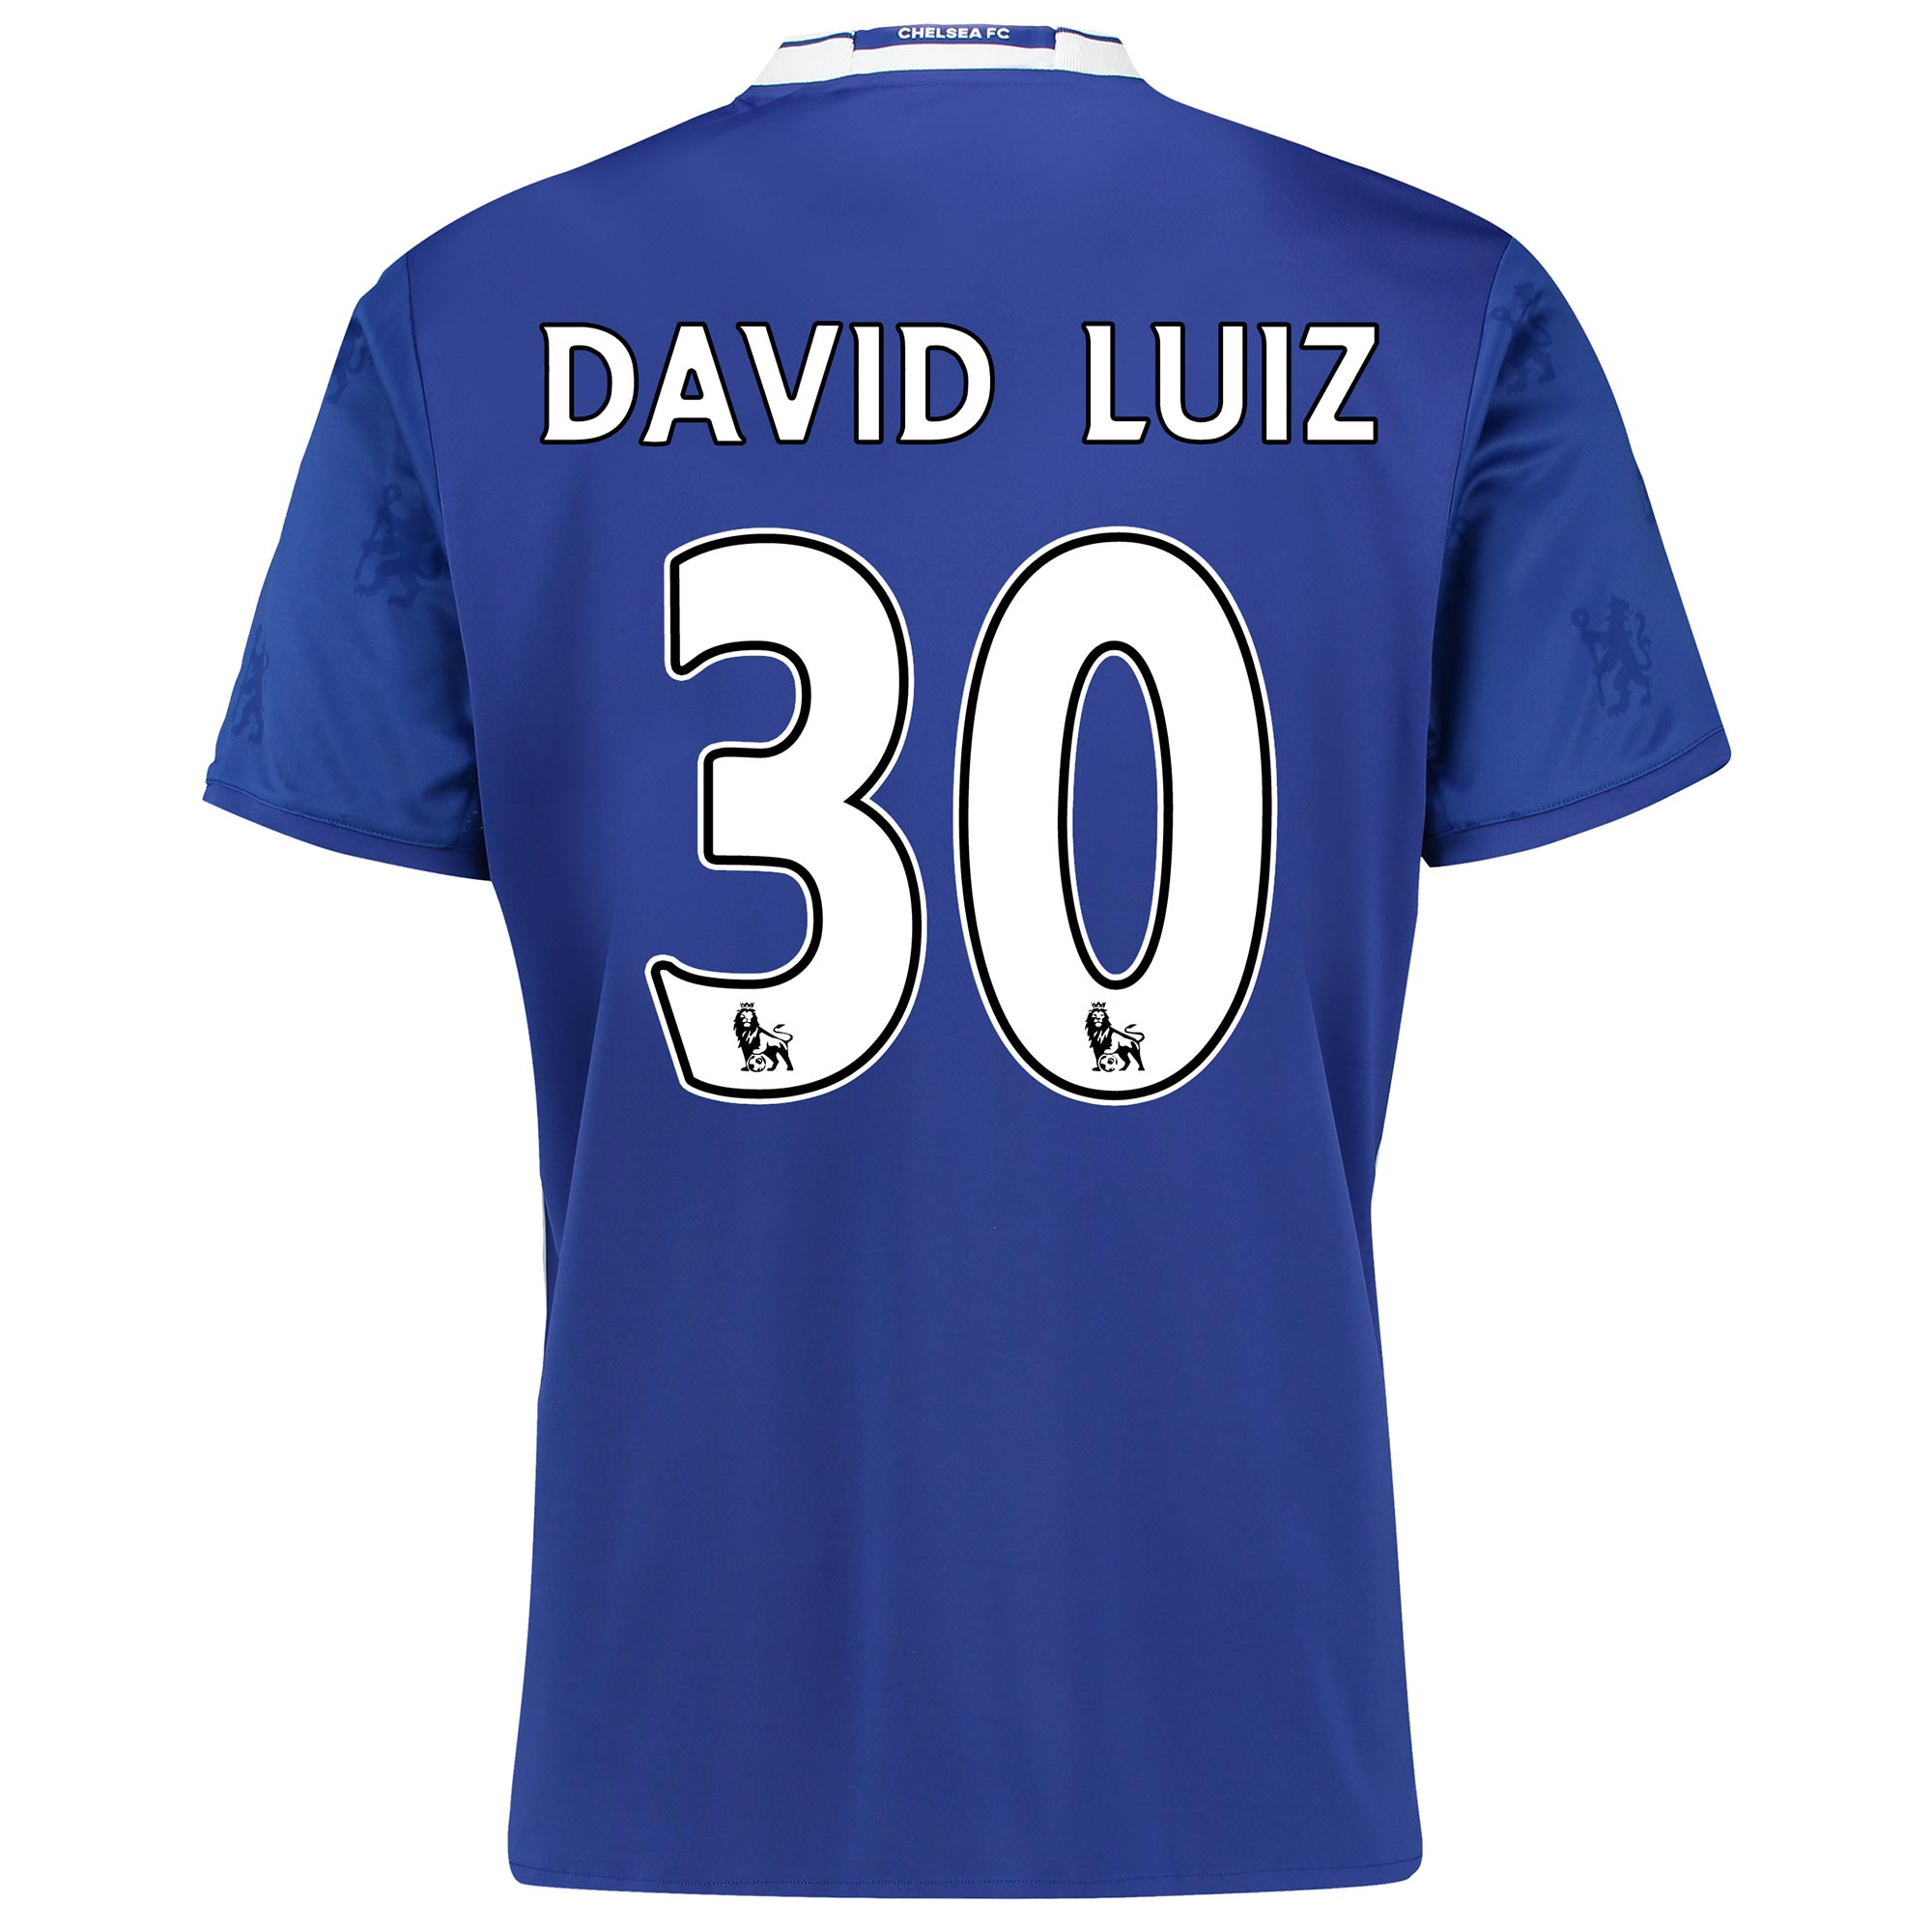 Chelsea Home Shirt 2016-17   Inspired by tradition and shaped by legacy, the official Chelsea Home Shirt 2016-17 restores a classic Stamford Bridge image, with its vintage v-collar drawing allusion to Chelsea sides of yesteryear.   With the club crest's central lion motif forming the basis of a unique, all-over pattern print, the 2016-17 Chelsea home jersey's Three Stripe branding features in a contemporary side placement, completing a winning mix of old and new for the Blues' renewed title challenge.   Benefits:   Climacool® heat and moisture management Printed fabric Club crest: woven badge Engineered Chelsea FC sign off on collar 100% recycled polyester with David Luiz 30 printing